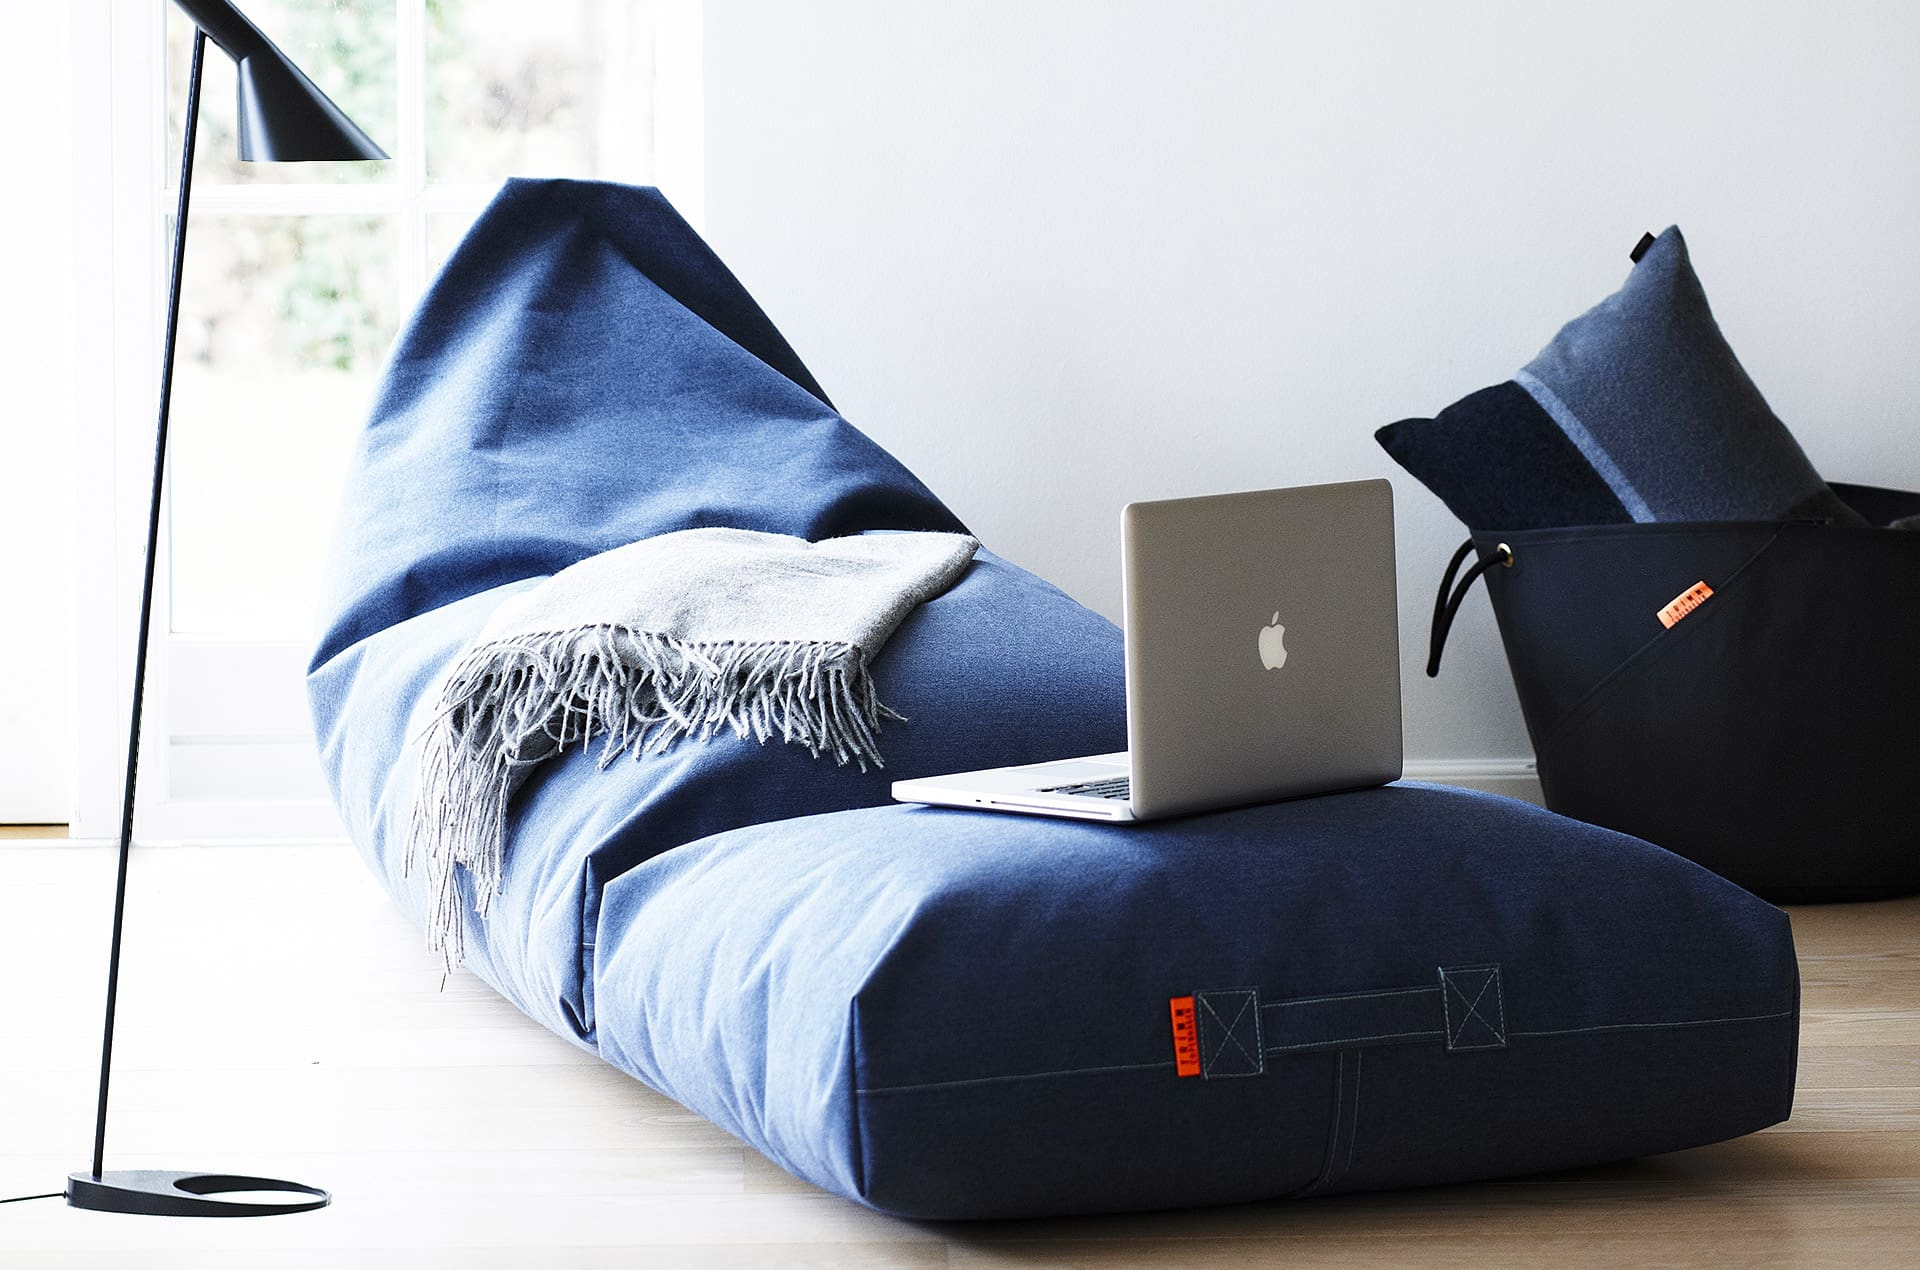 Coussin de sol waterproof FELIX Jeans by Trimm-PARIDEO design contemporain durable